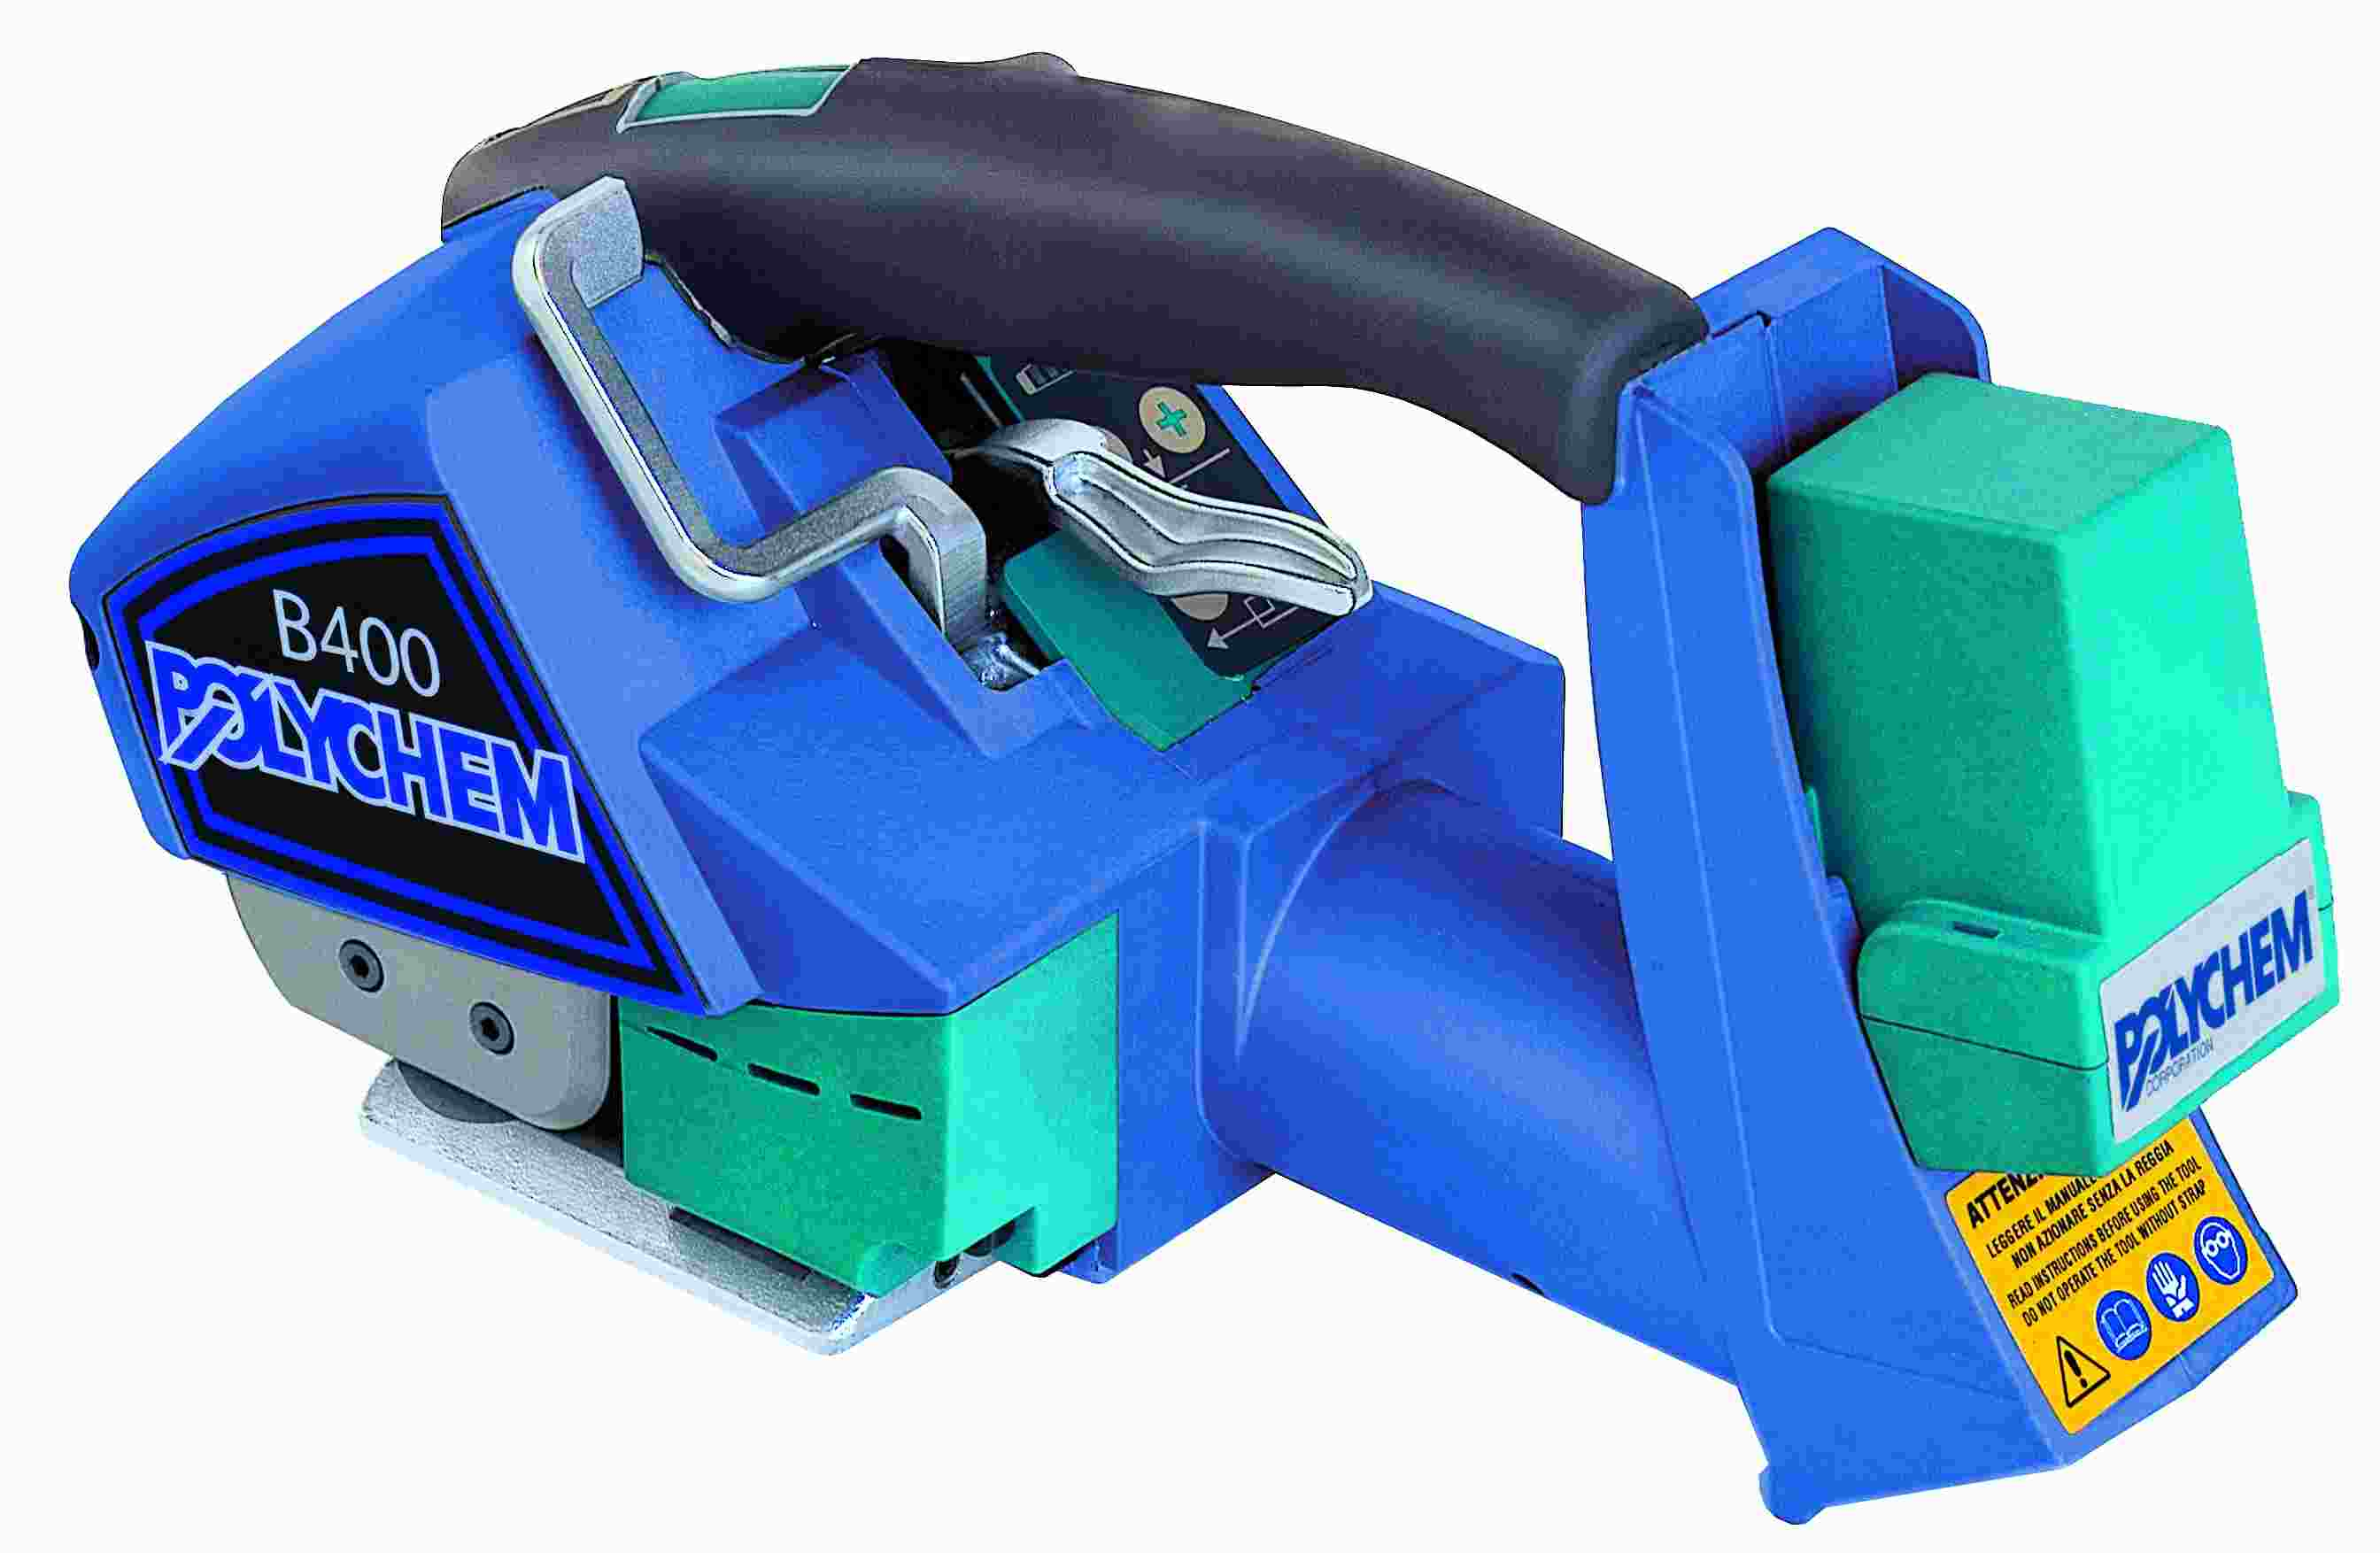 Battery Powered Friction Weld Tool - B400